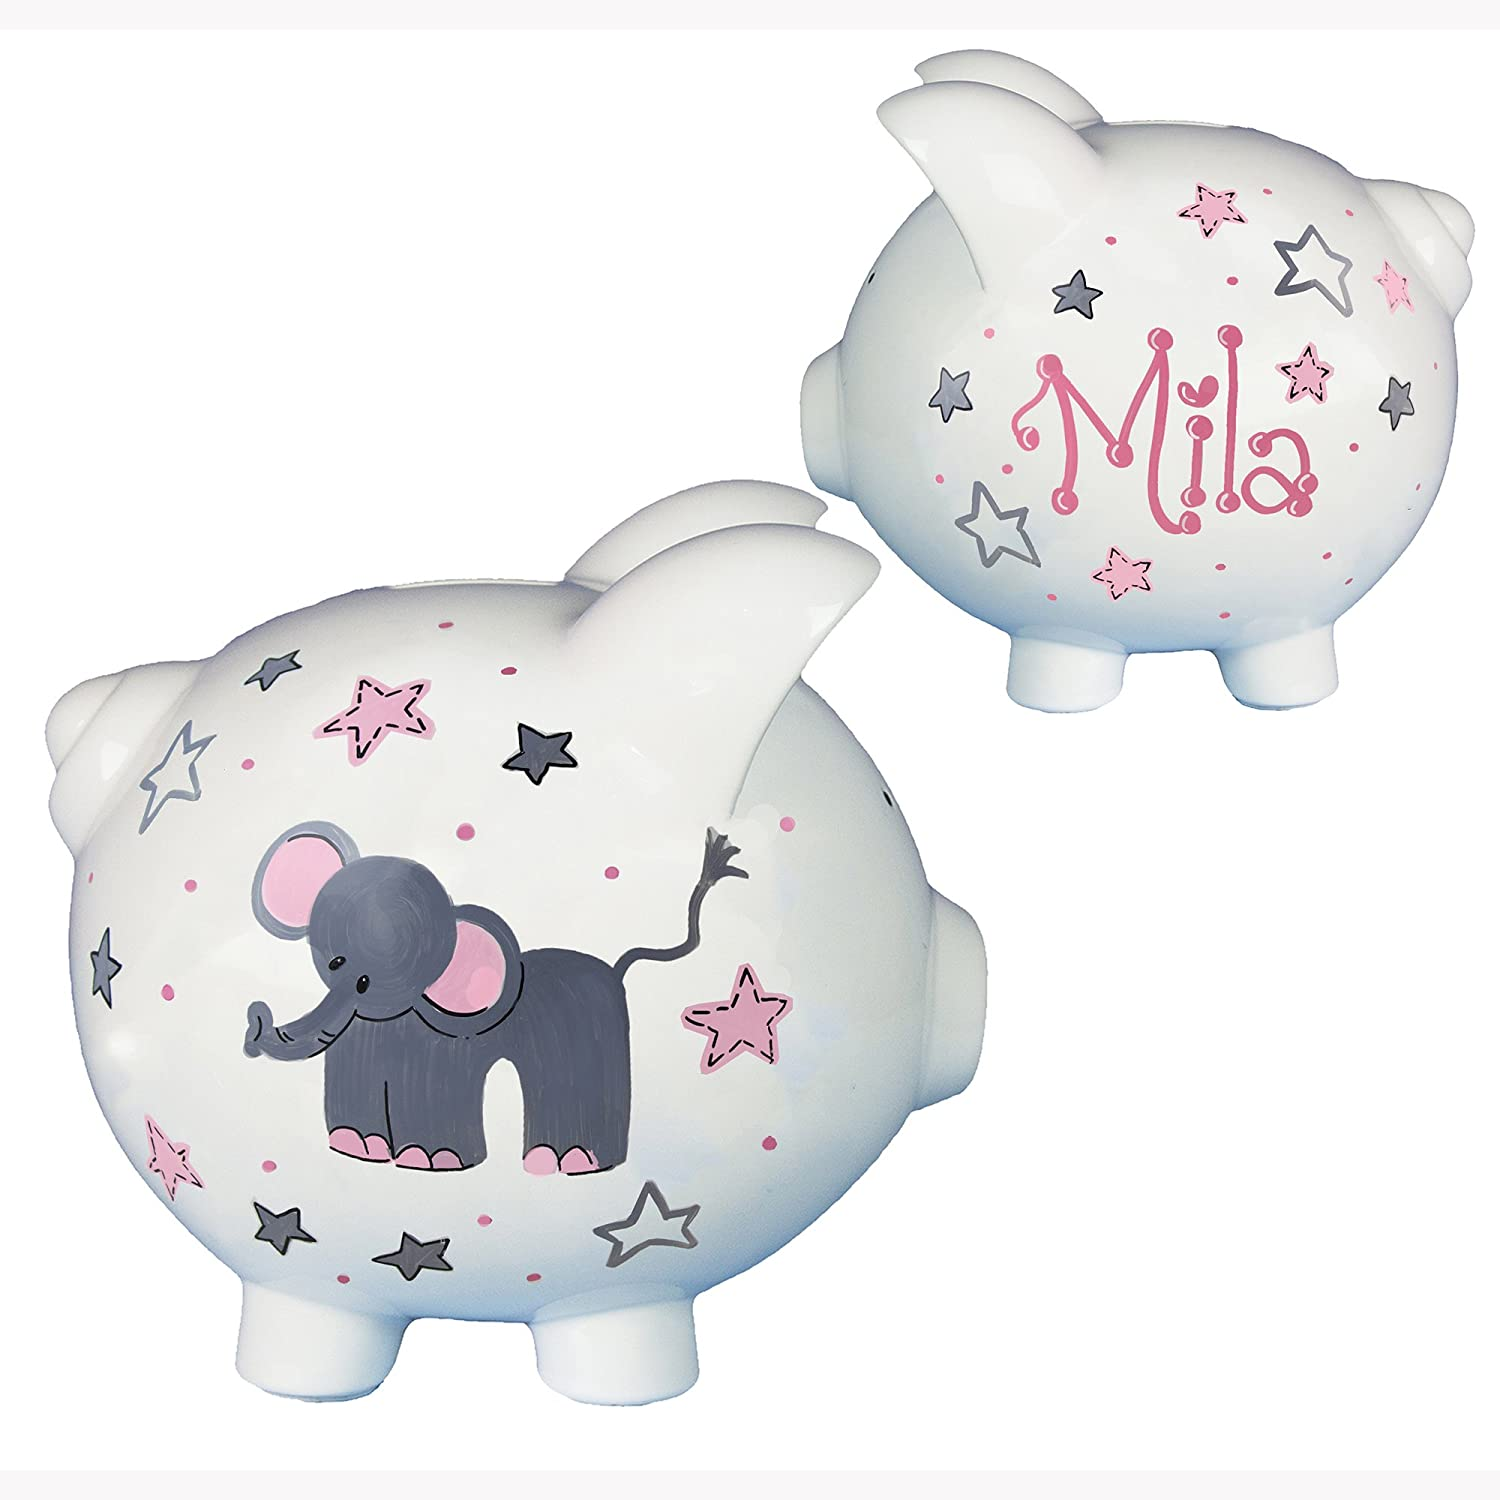 Personalized Gray Elephant Bank for Girls Hand Painted Piggy Bank Name in Pink